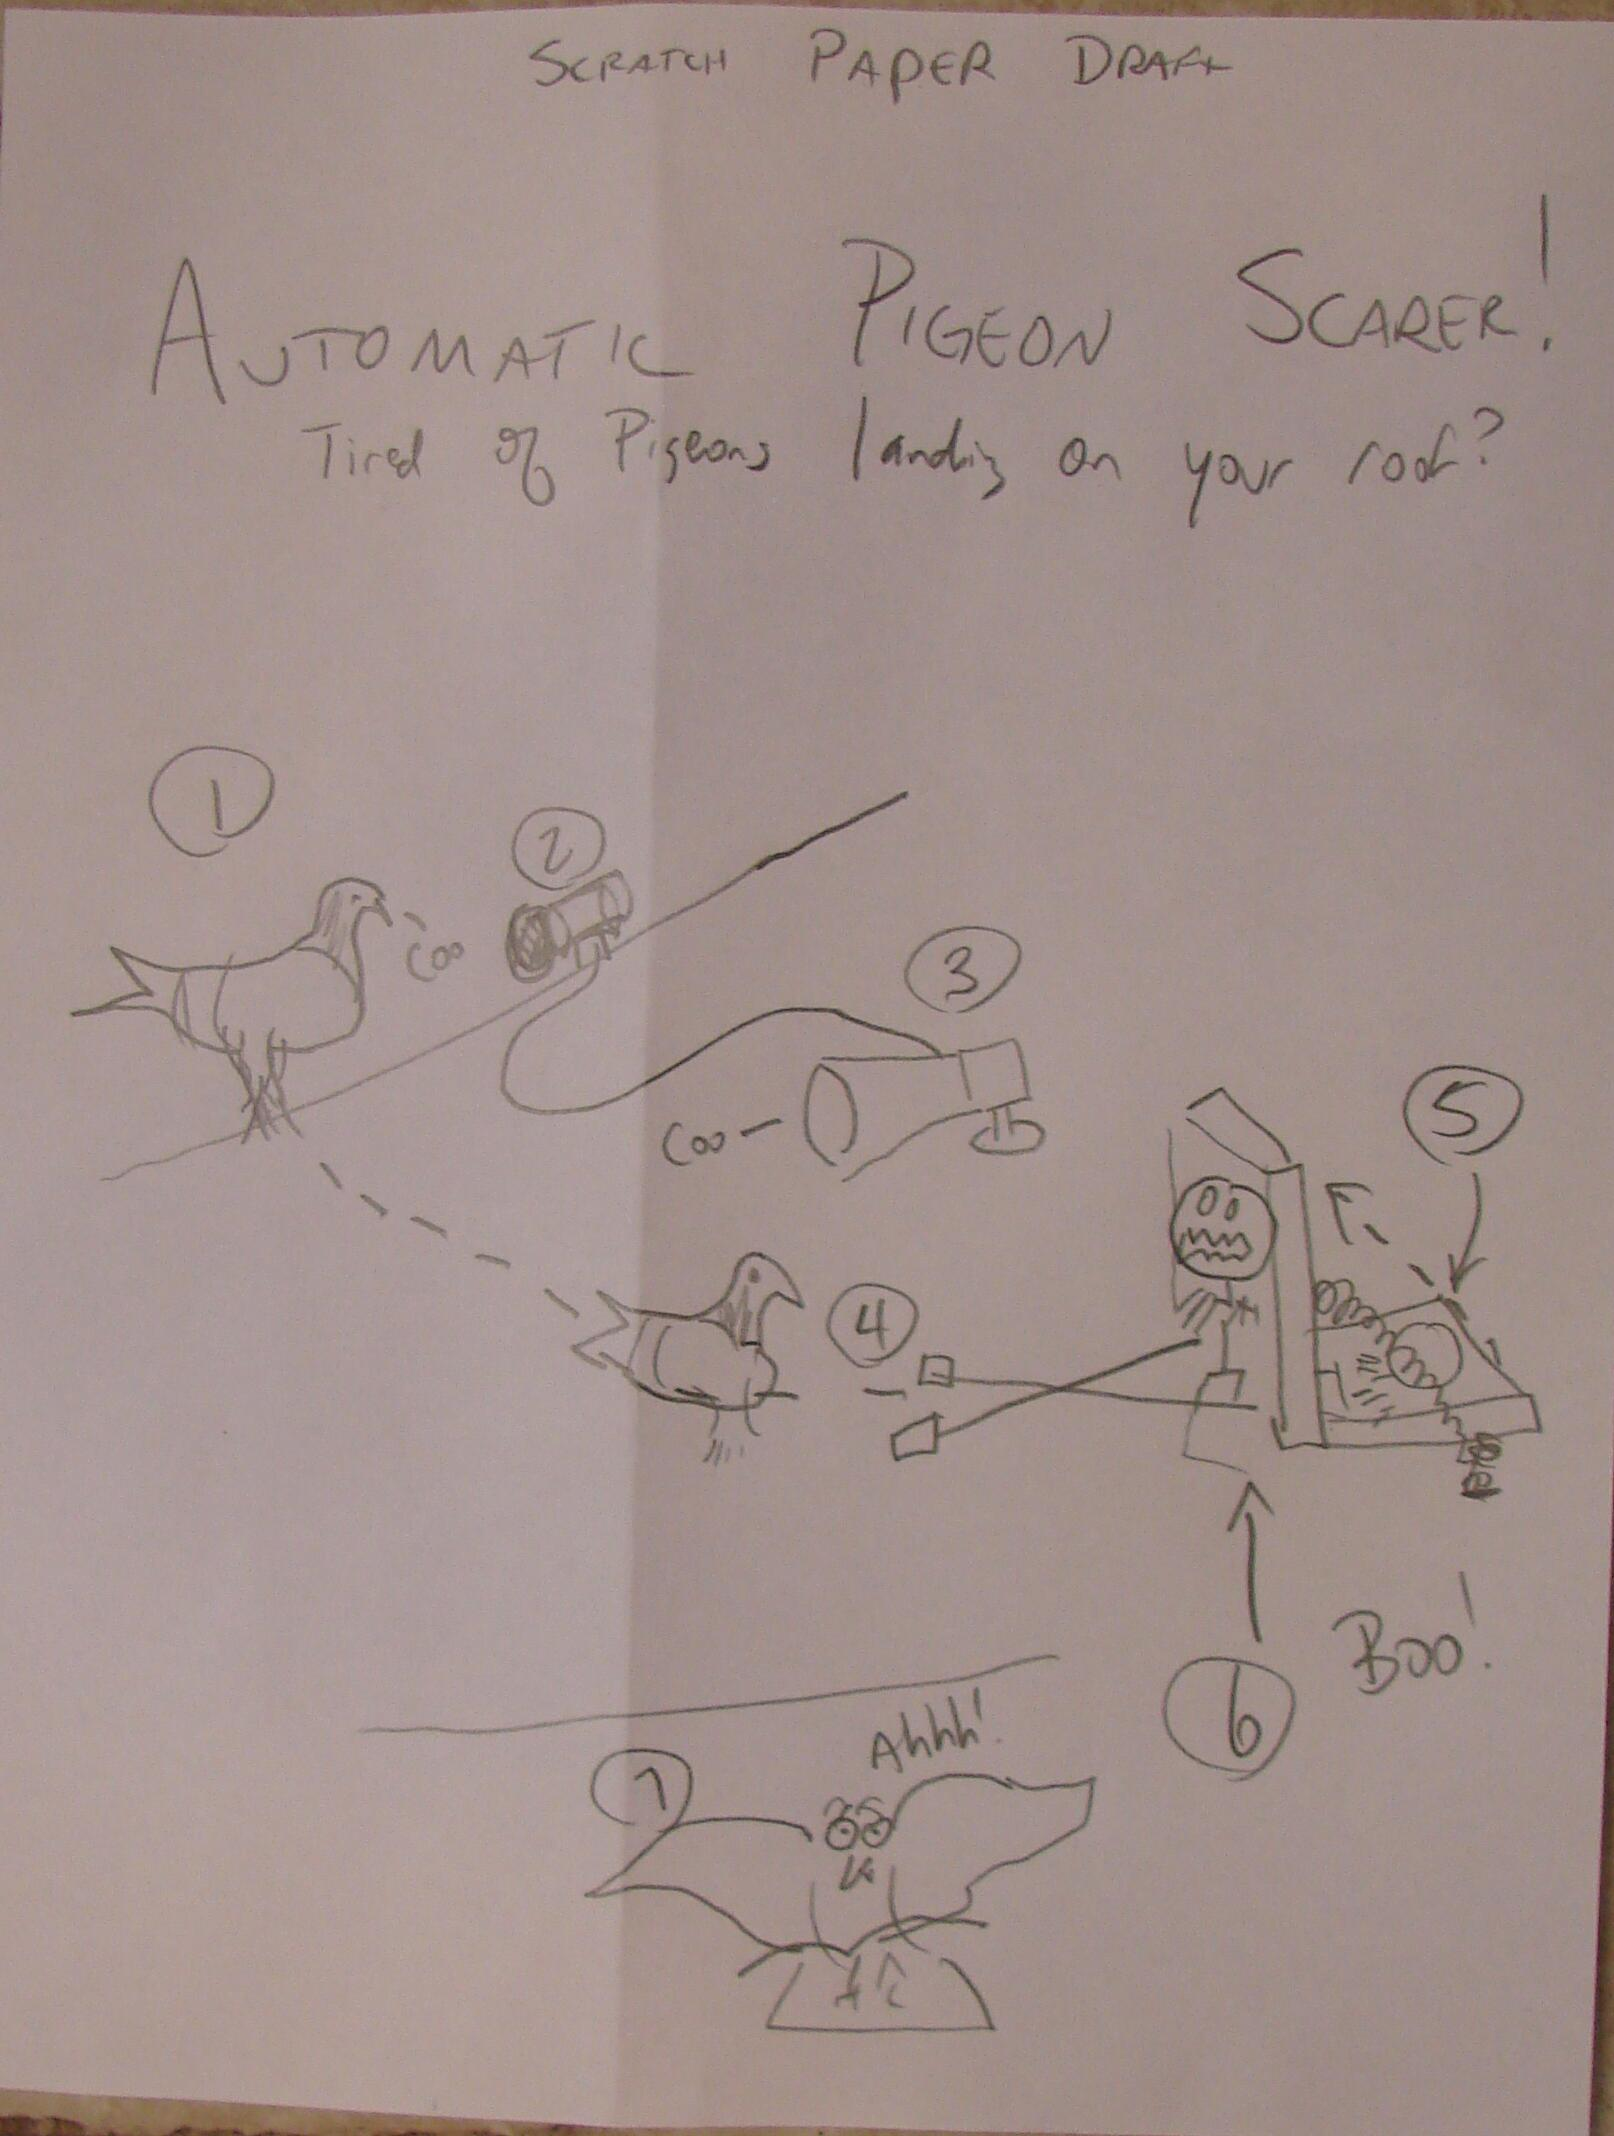 always write teaching transitional phrases and revision after  prewrite this is the rough draft sketch i created for my automatic pigeon scaring machine remember to assure students that their artwork will not be